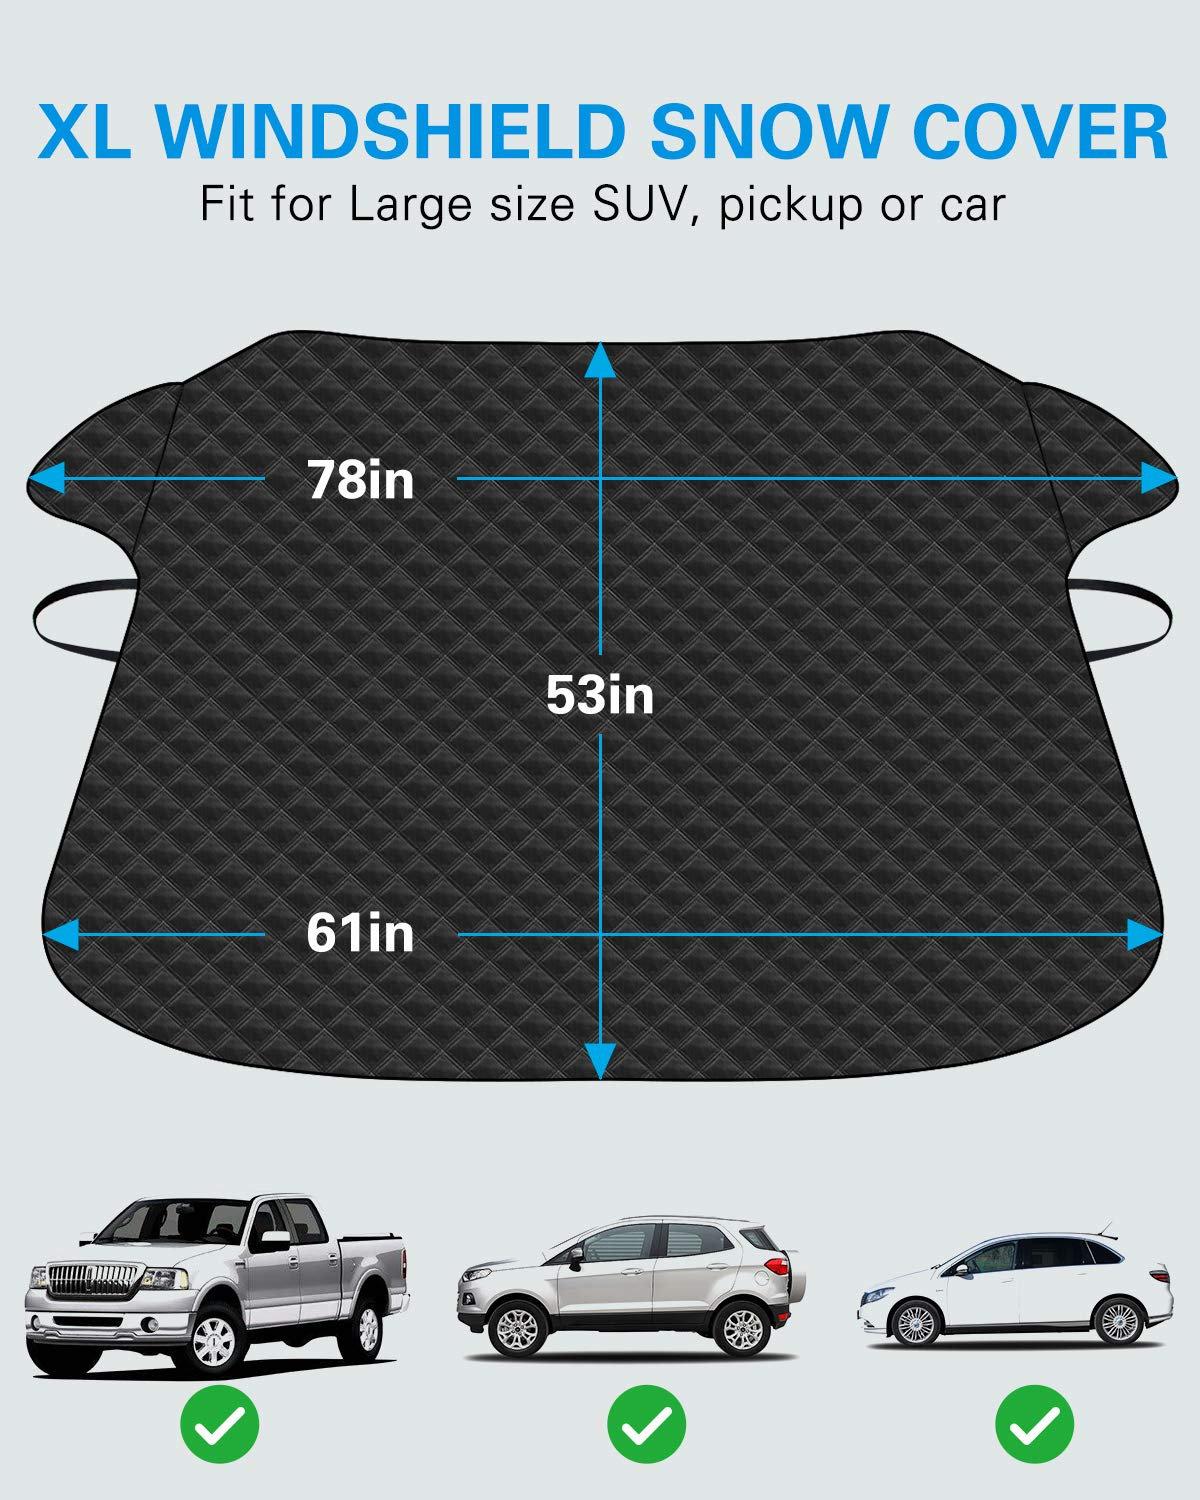 Winter Windshield Cover for Ice and Frost BUG HULL XL Car Windshield Cover for Snow Auto Snow Windshield Cover 61x53 Thickened Snow Covers for Car